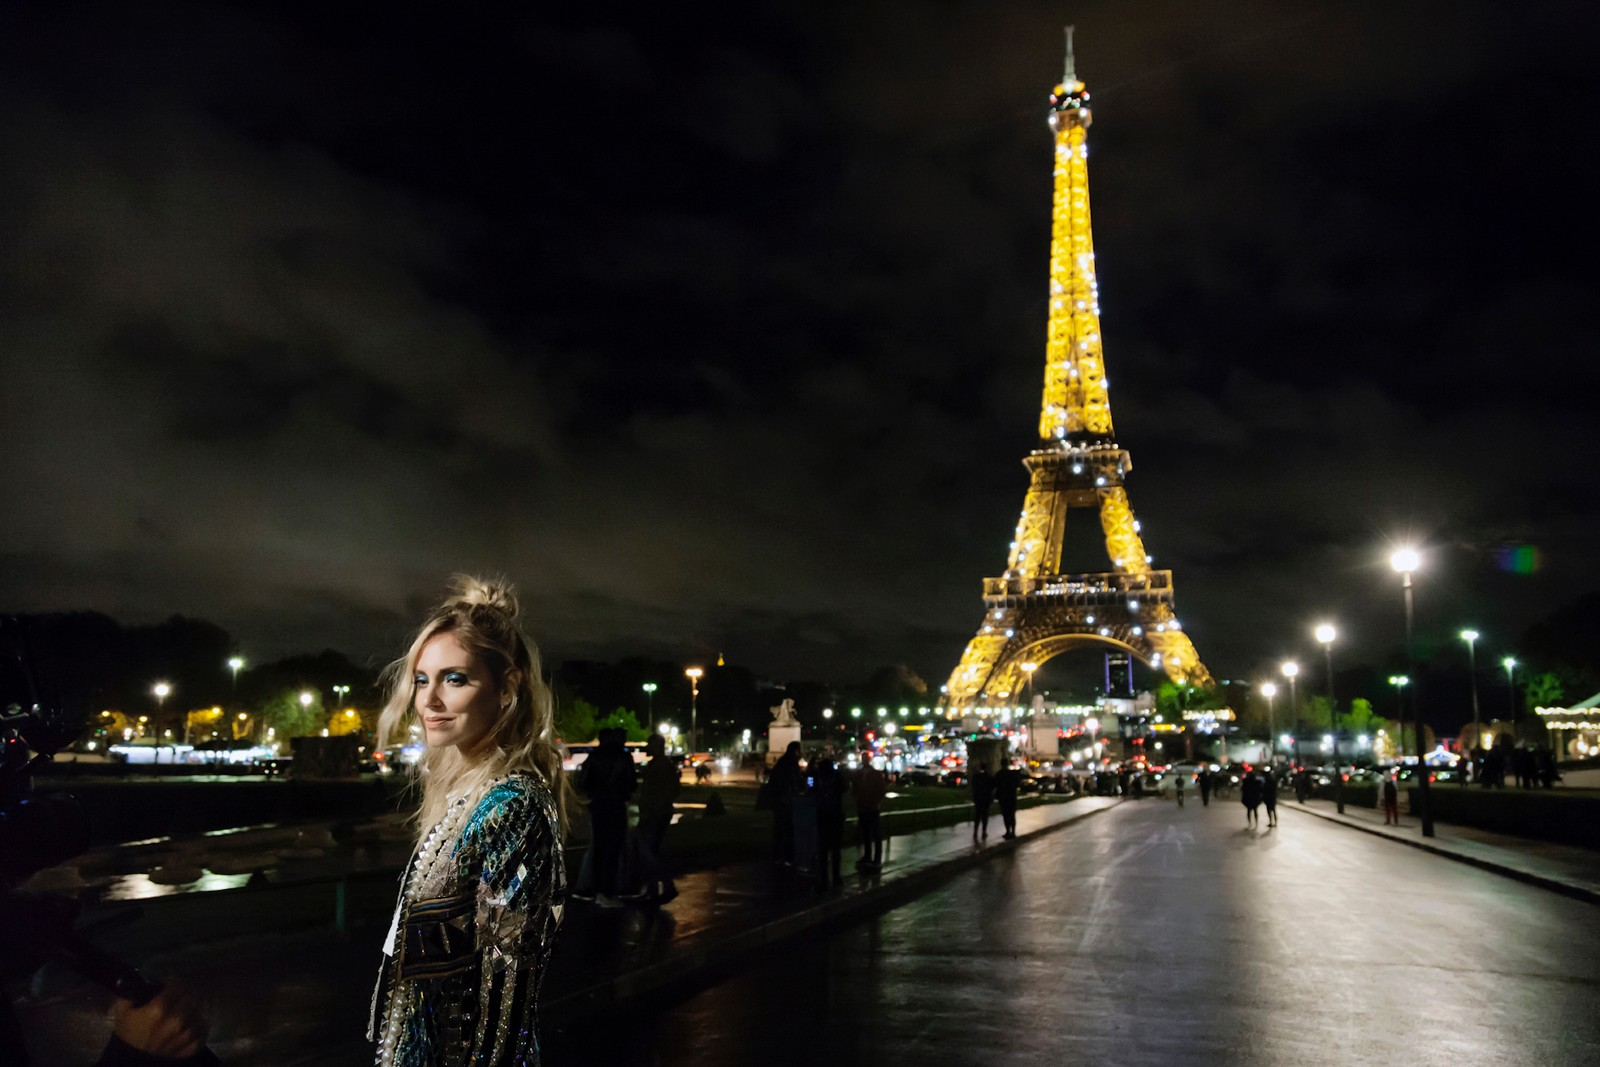 Chirara Ferragni 'Unposted' Documentary Interview Feature Influencer Digital Entrepreneur